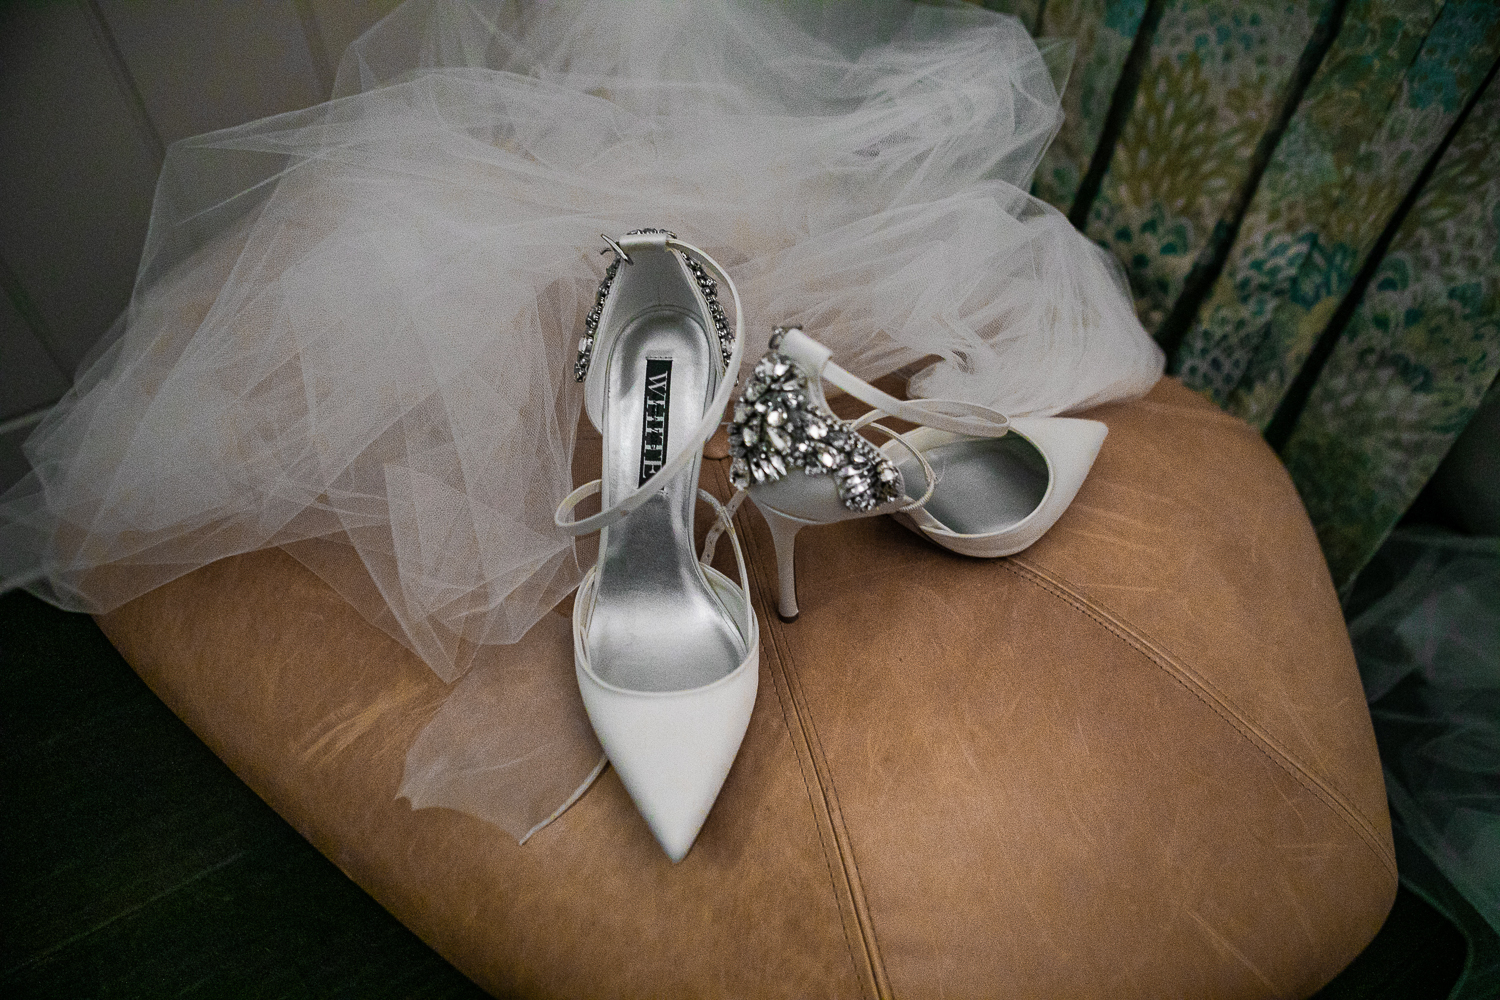 White jeweled wedding shoes and white wedding veil at the Beekman Hotel in New York City. | Beekman Hotel Wedding Photos | Jason and Susanna's Glam NYC Elopement